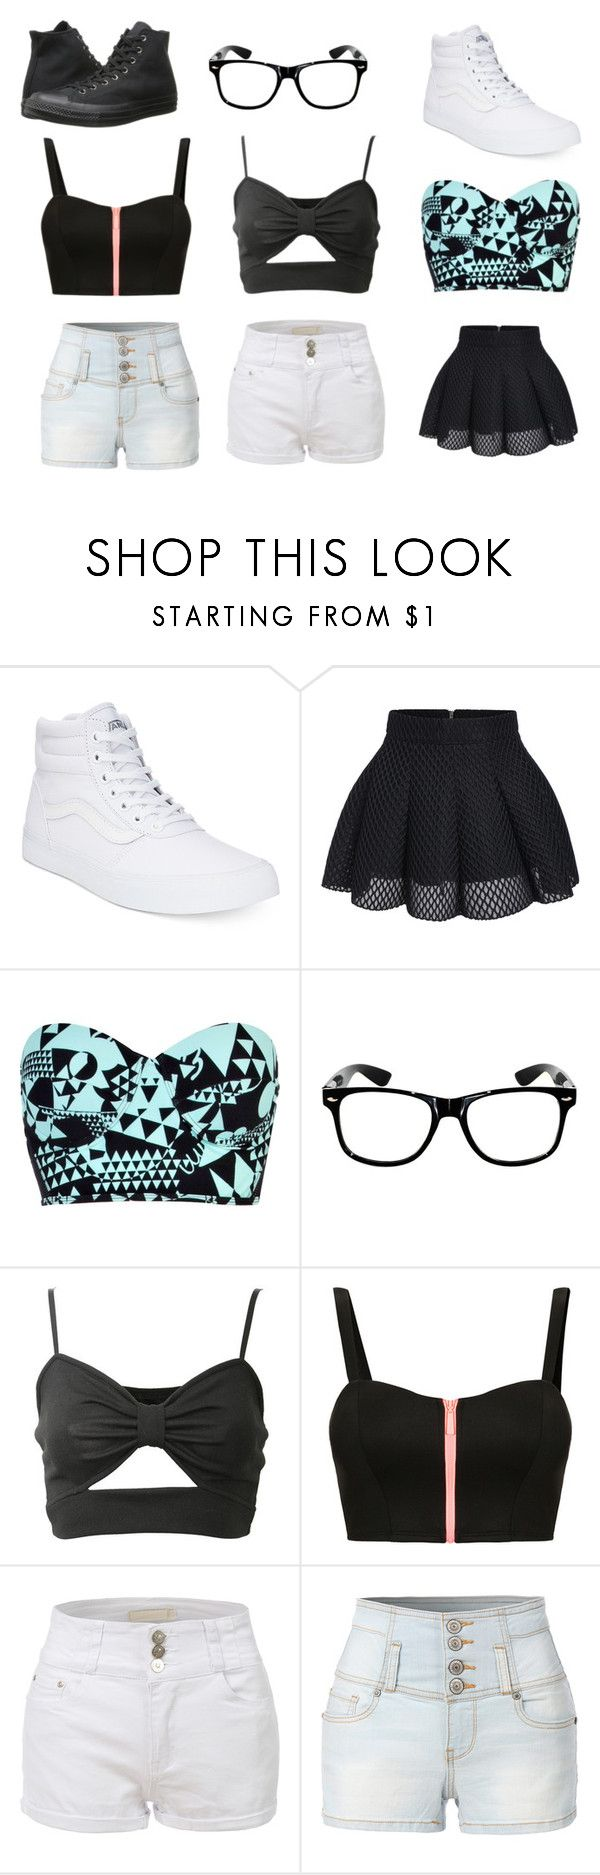 """Style"" by rmickle on Polyvore featuring Vans, River Island, TALLY WEiJL, LE3NO and Converse"